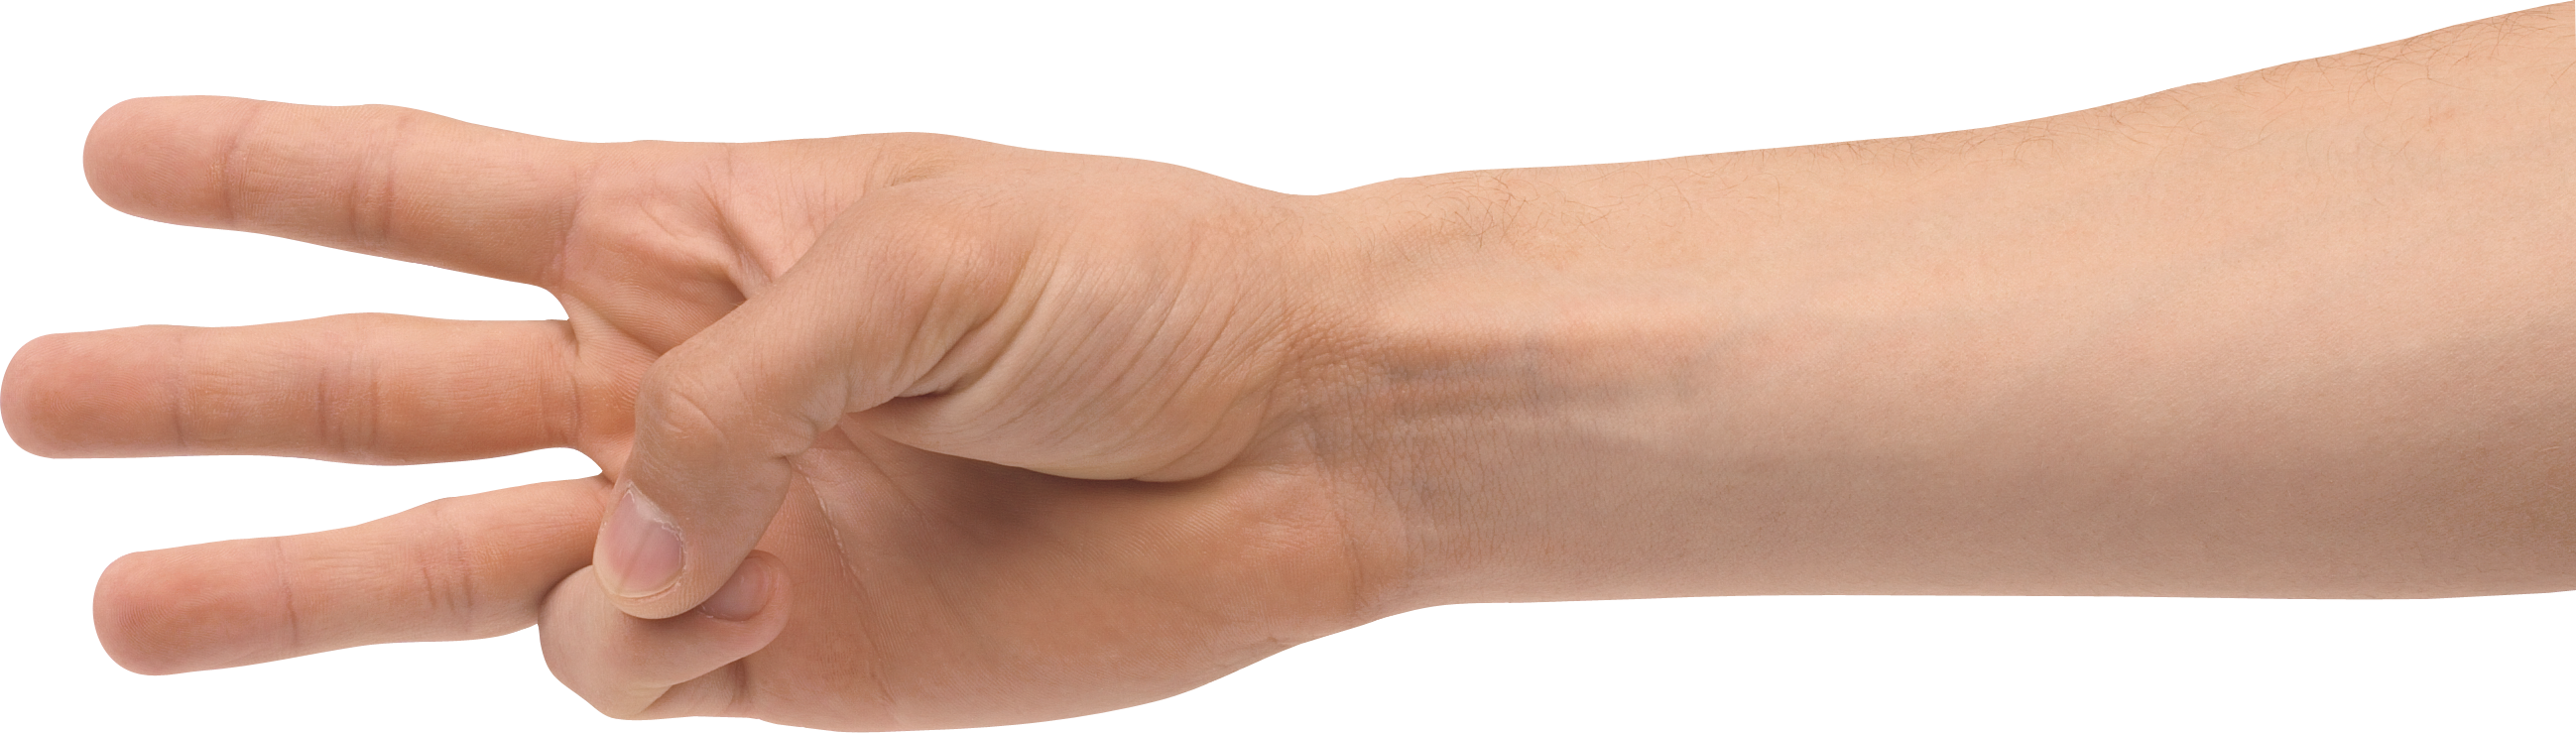 Three finger hand, hands PNG, hand image free - Cuffed Hands PNG